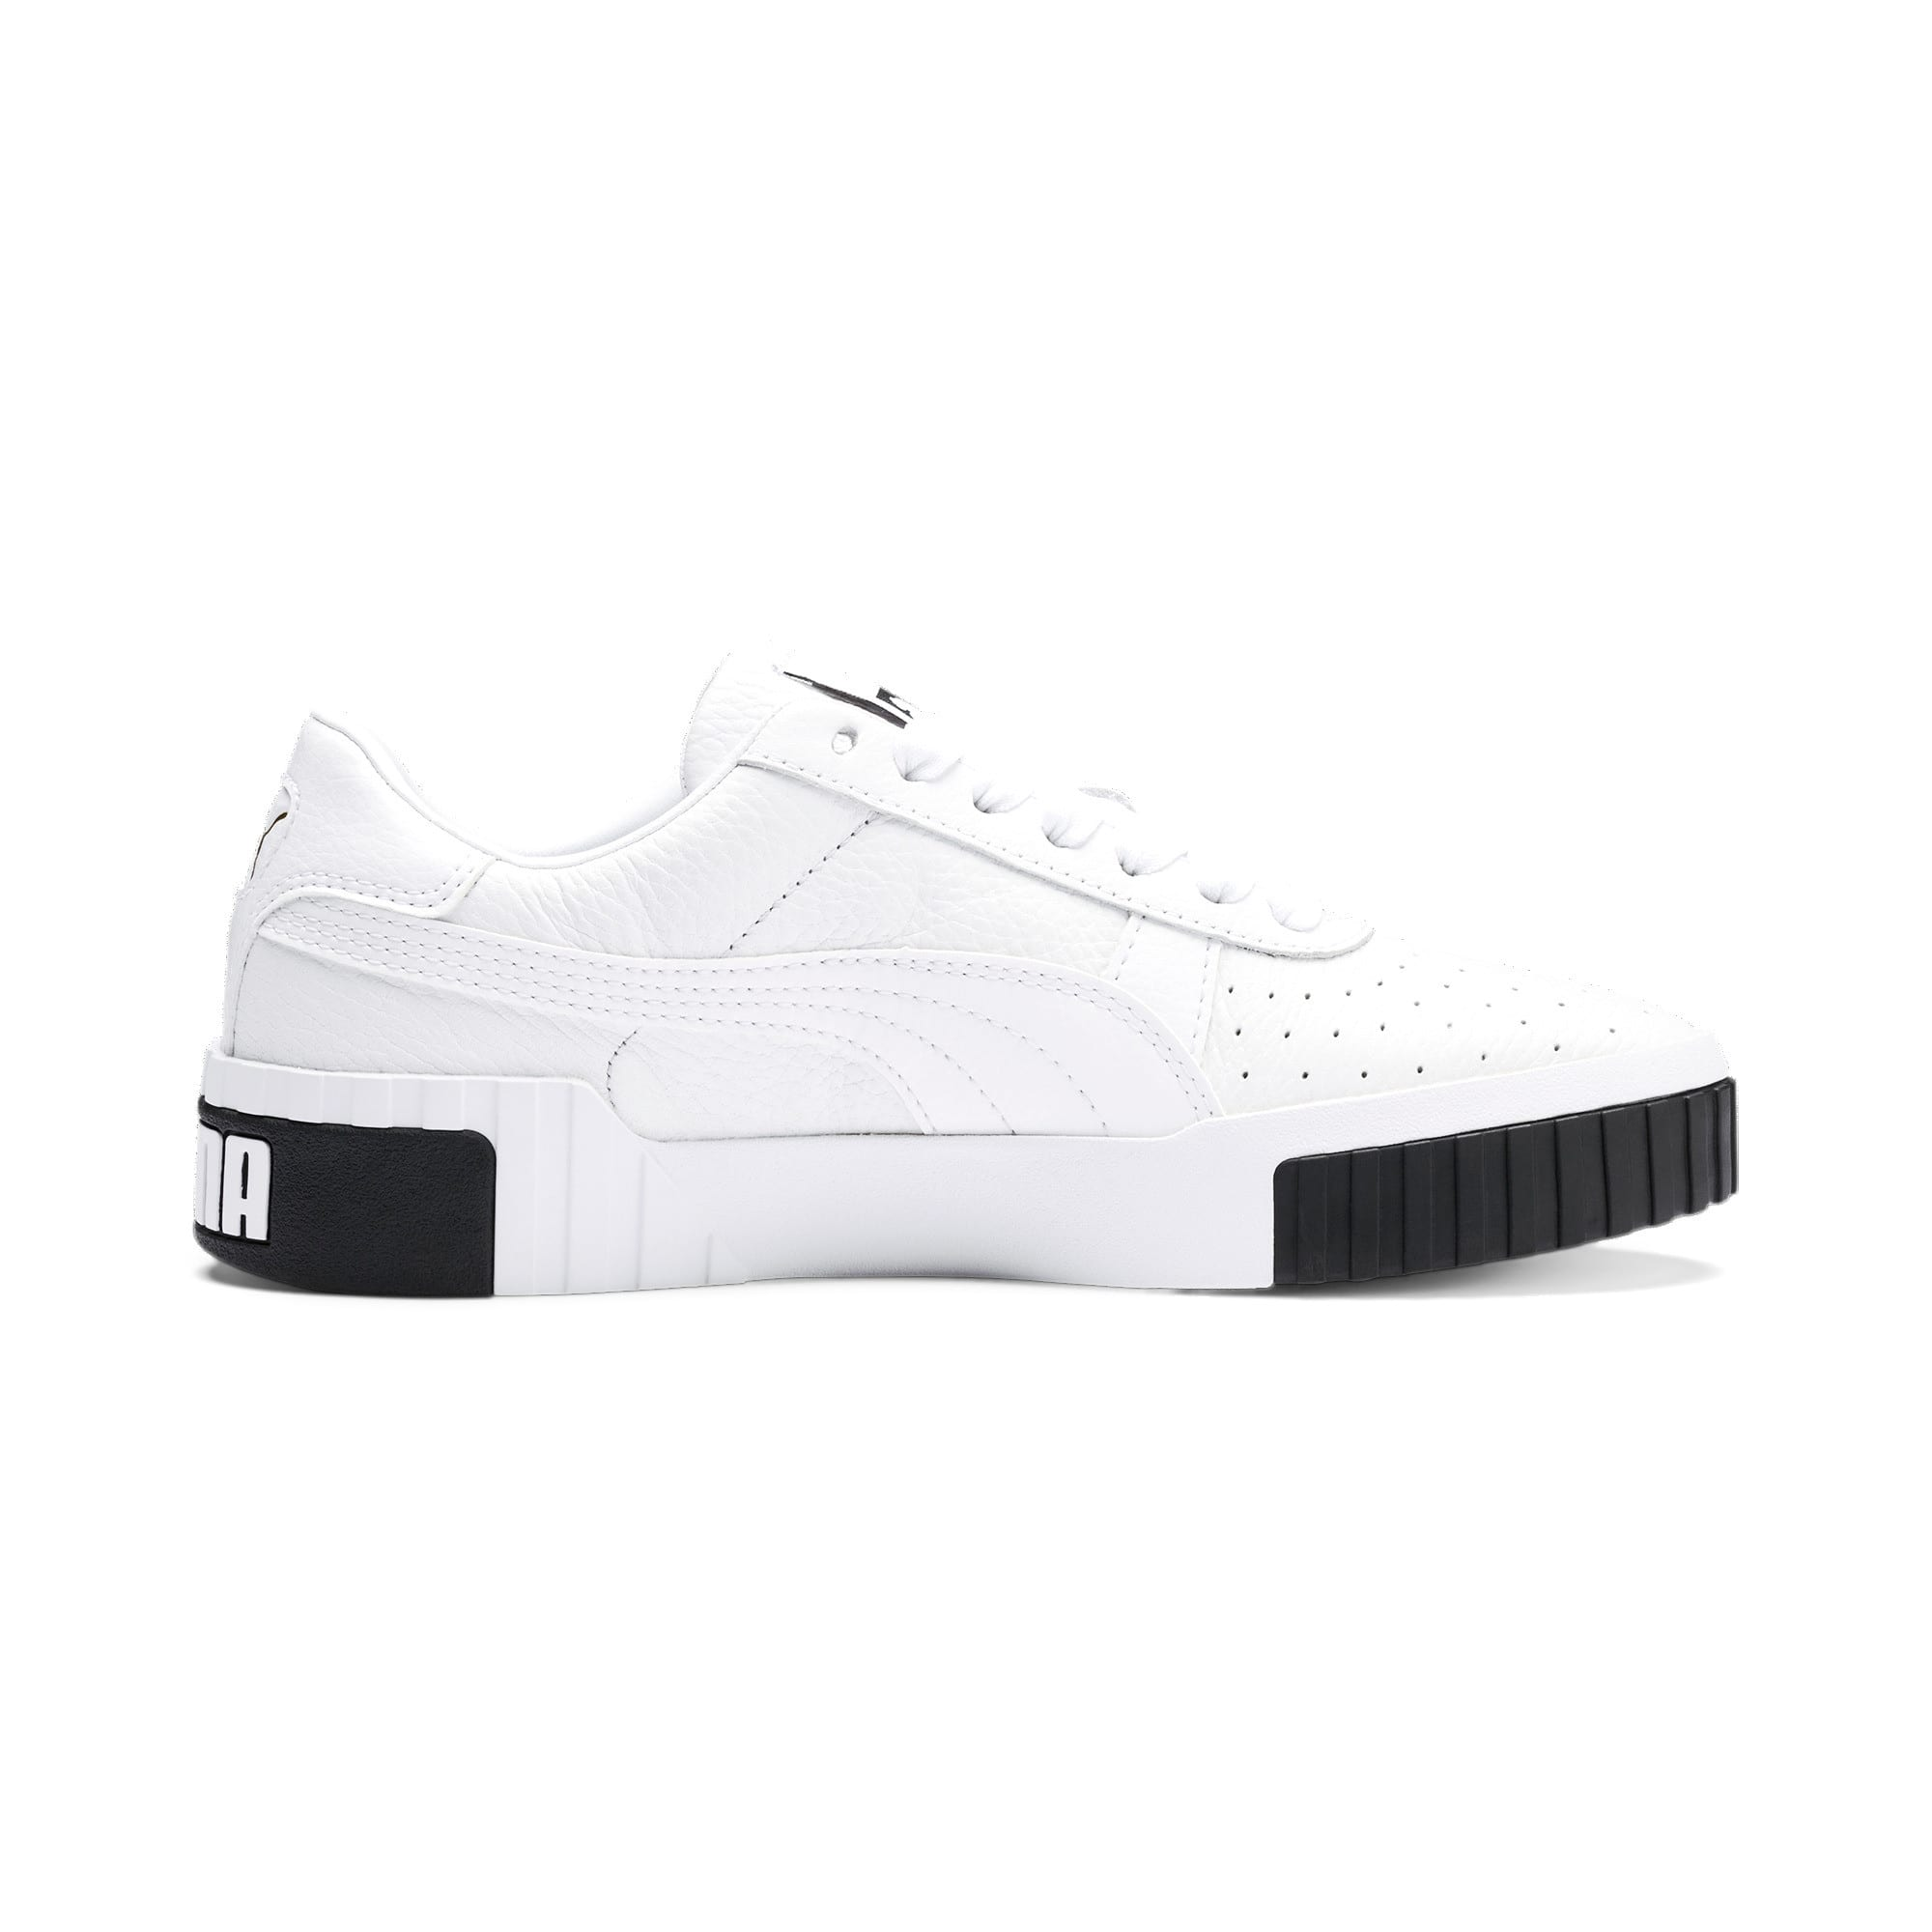 Thumbnail 6 of Cali Women's Trainers, Puma White-Puma Black, medium